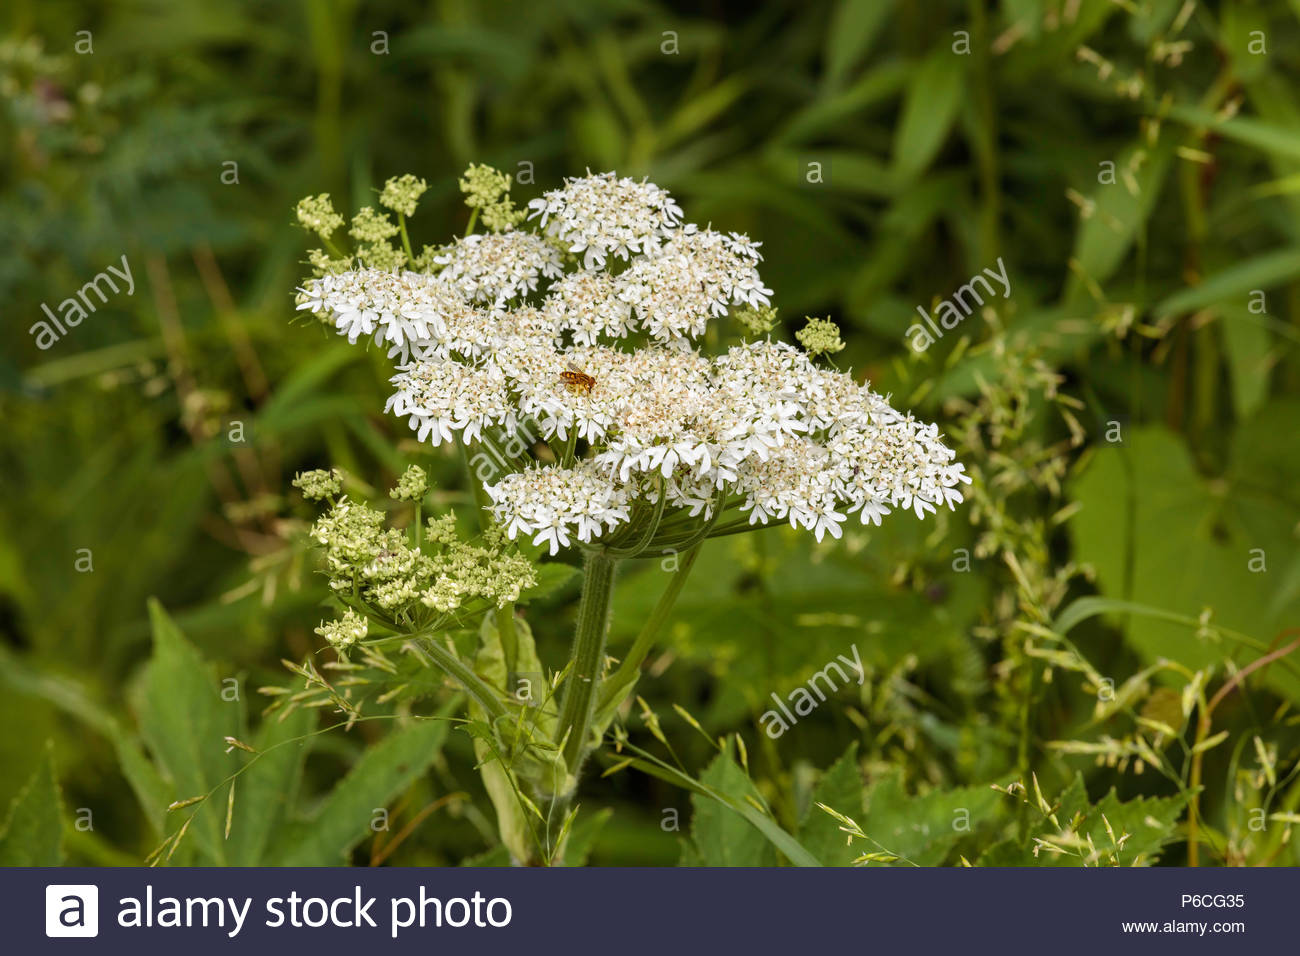 Heracleum maximum, cow parsnip, Indian celery, Indian rhubarb, pushki, at Lynde Shores Conservation Area in Whitby Ontario Canada - Stock Image